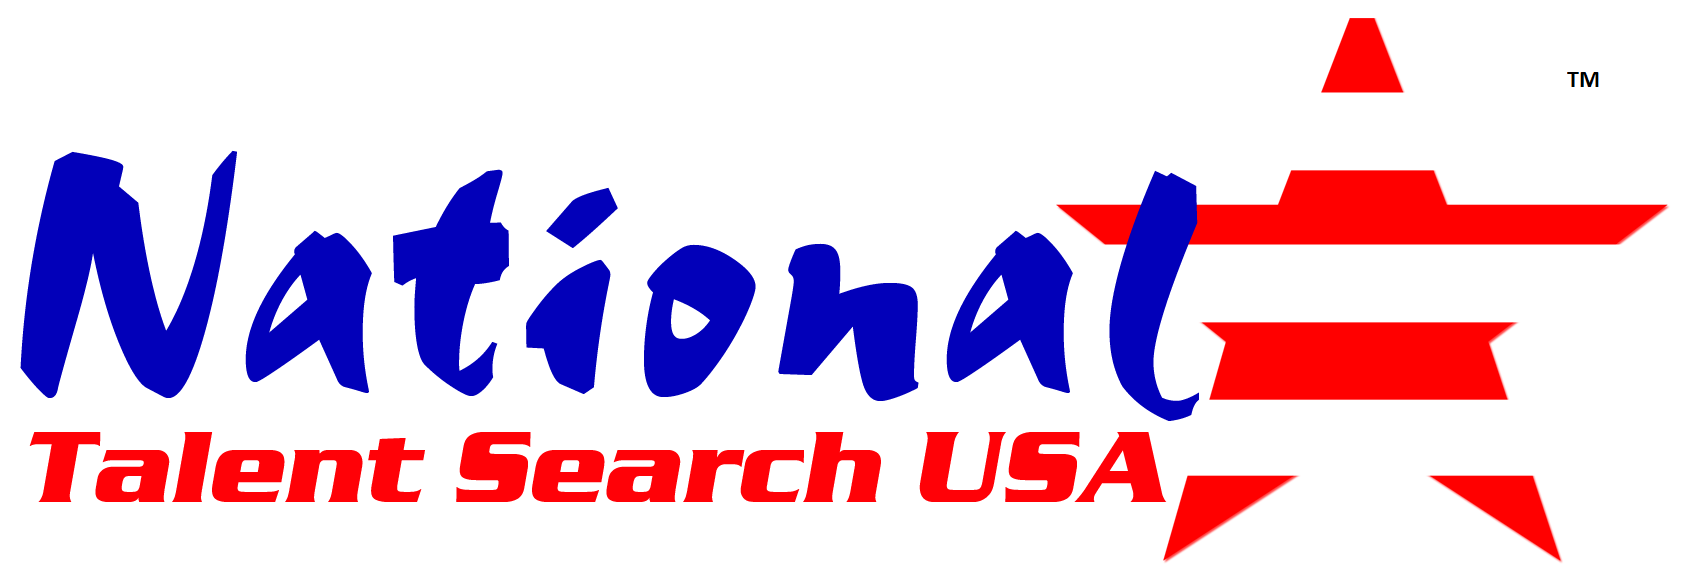 National Talent Search USA Brand